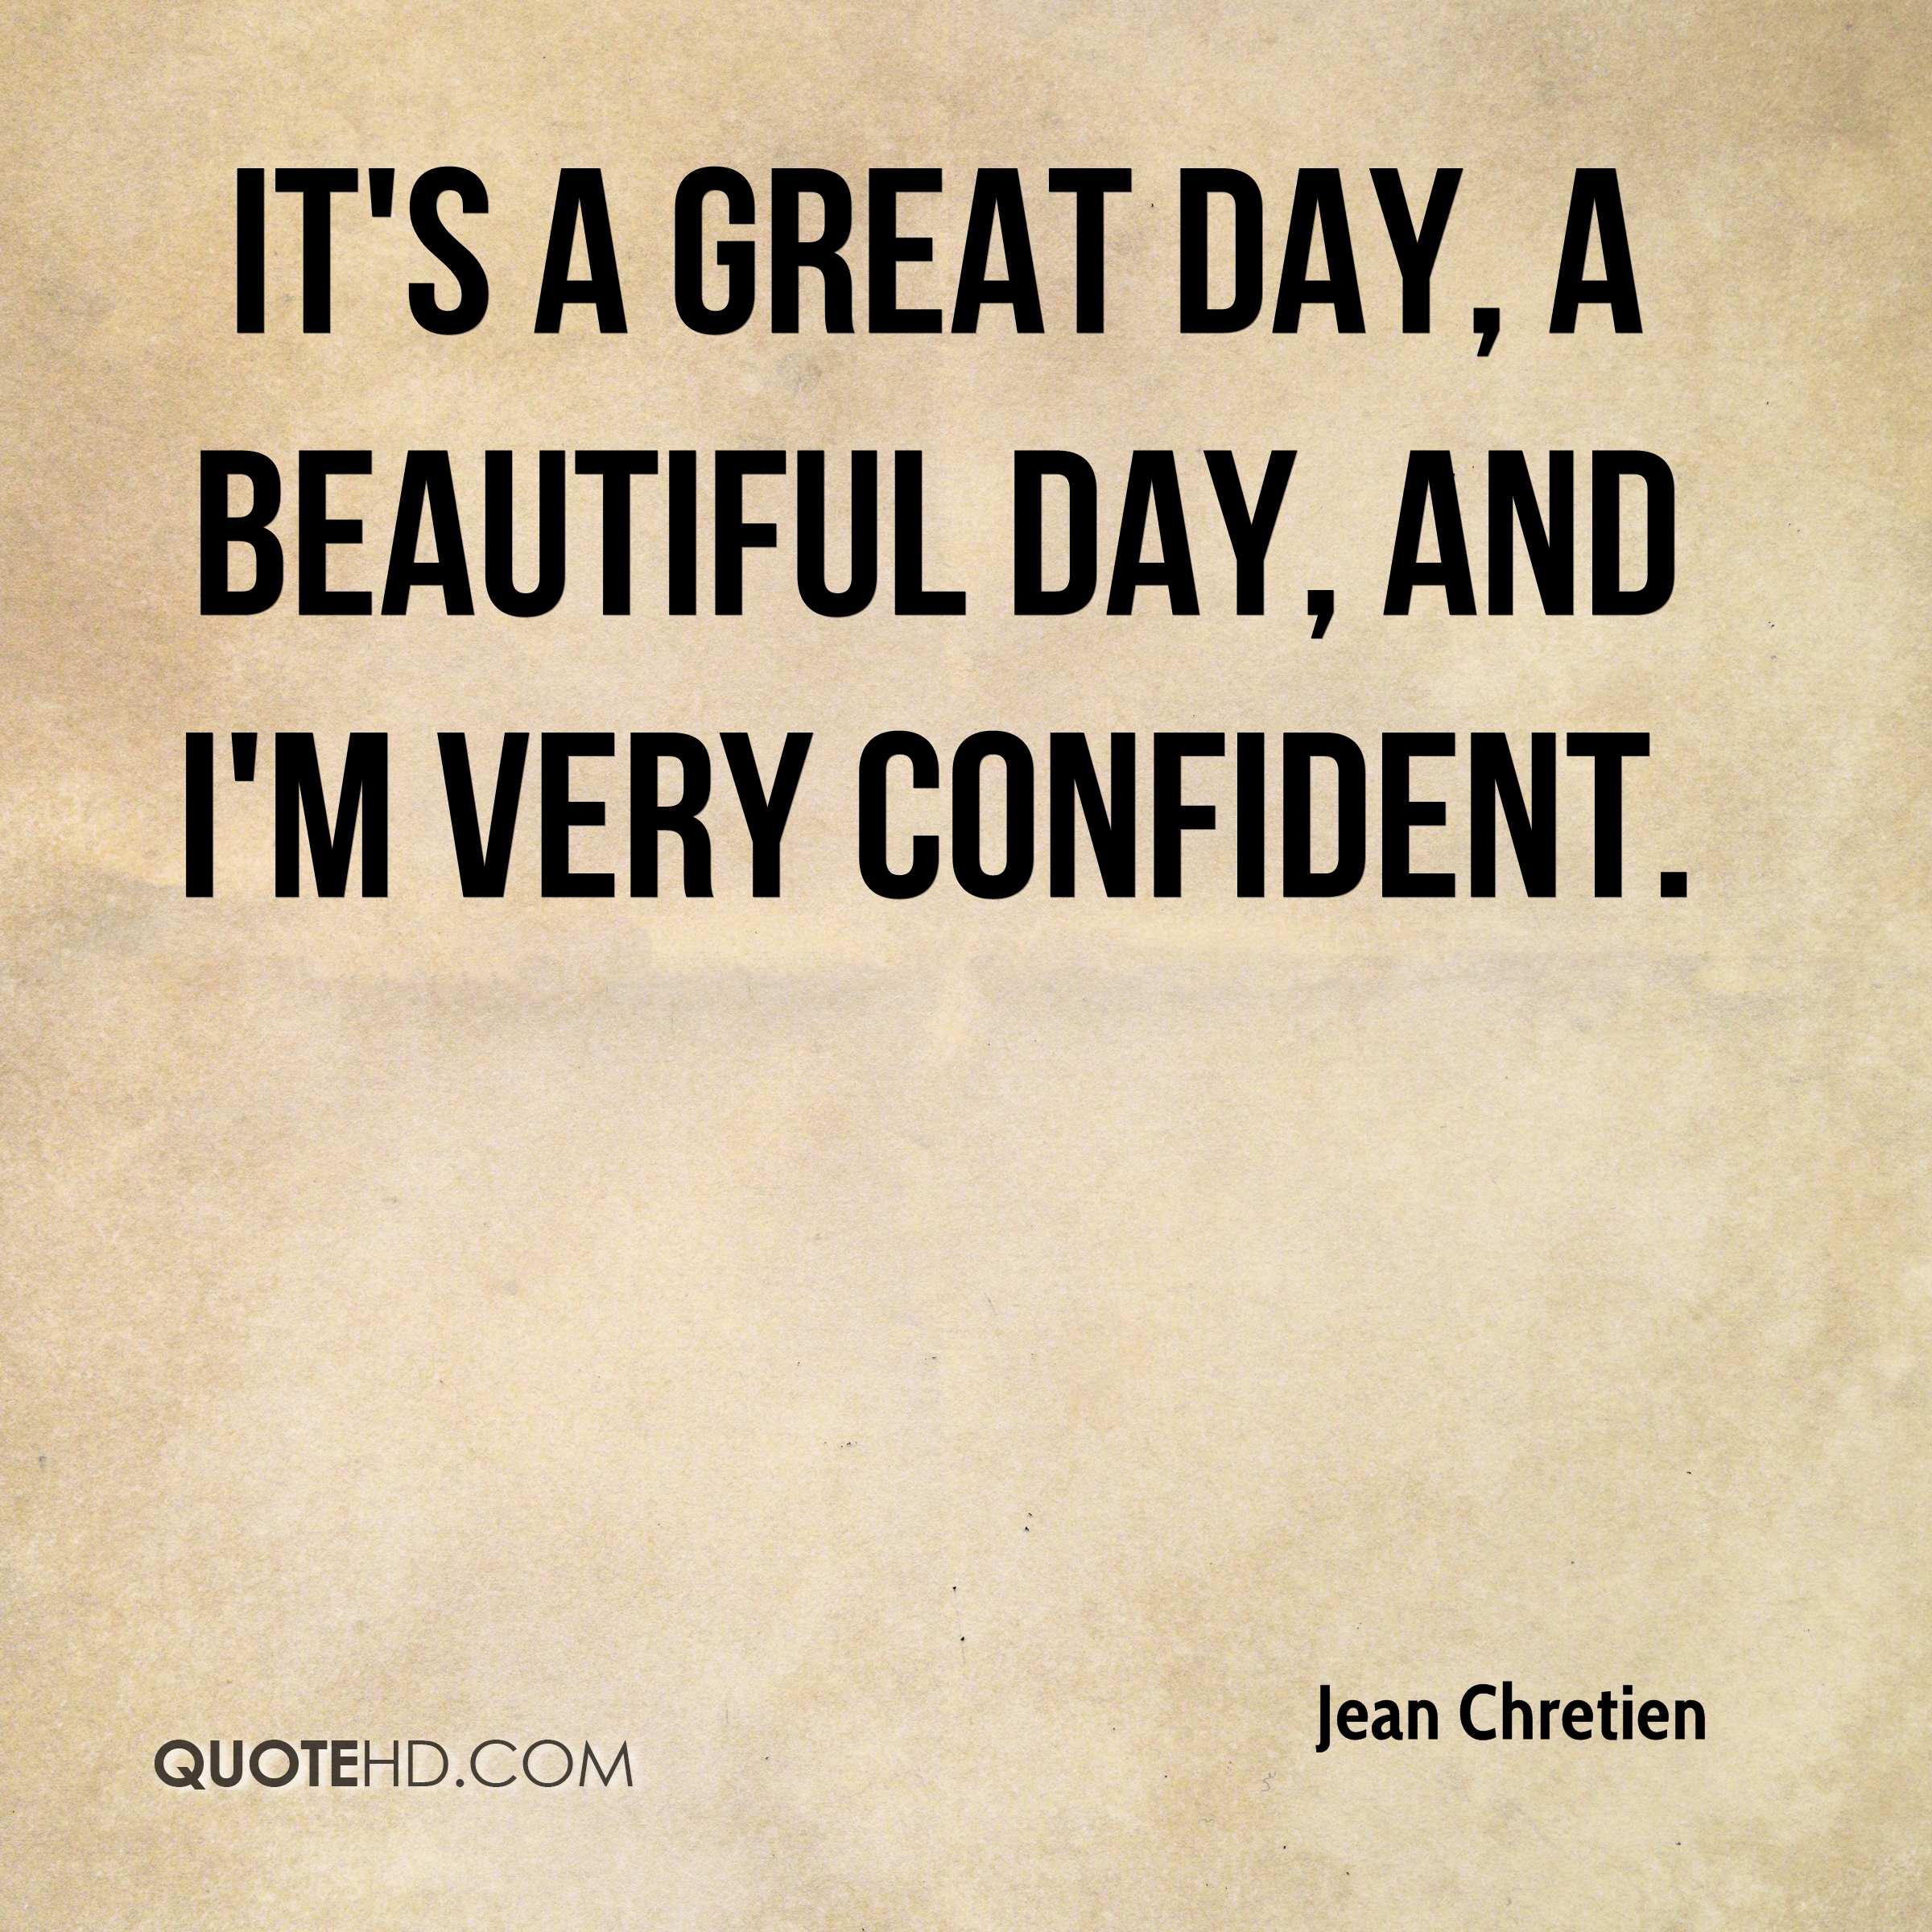 Beautiful Day Quotes: Jean Chretien Quotes